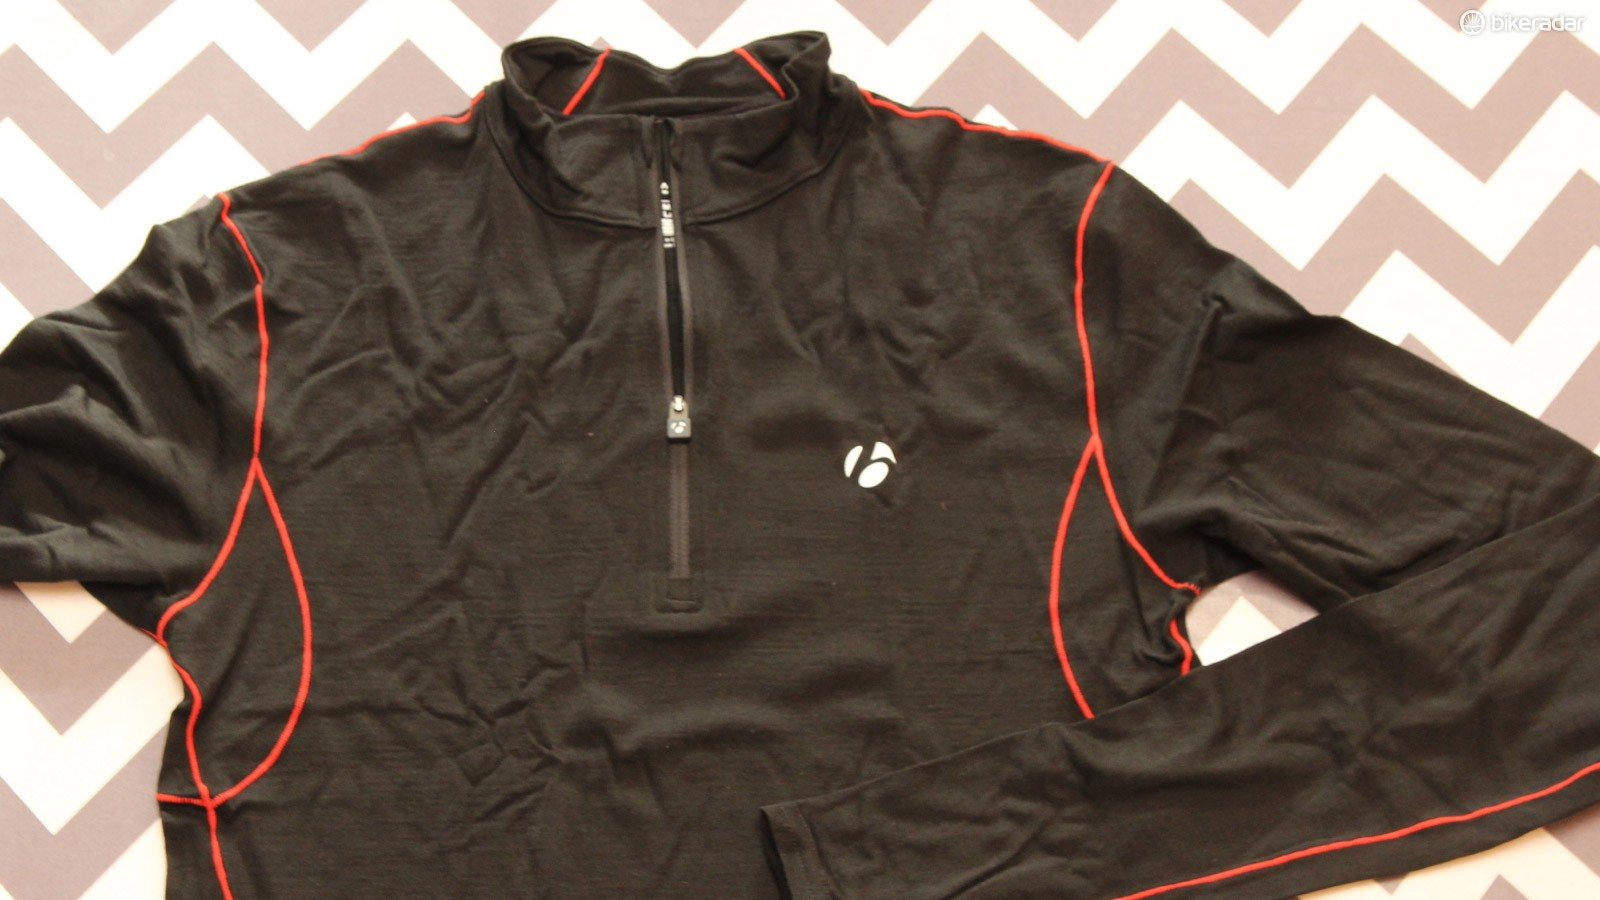 Bontrager's new merino baselayer is soft and stink-resistant